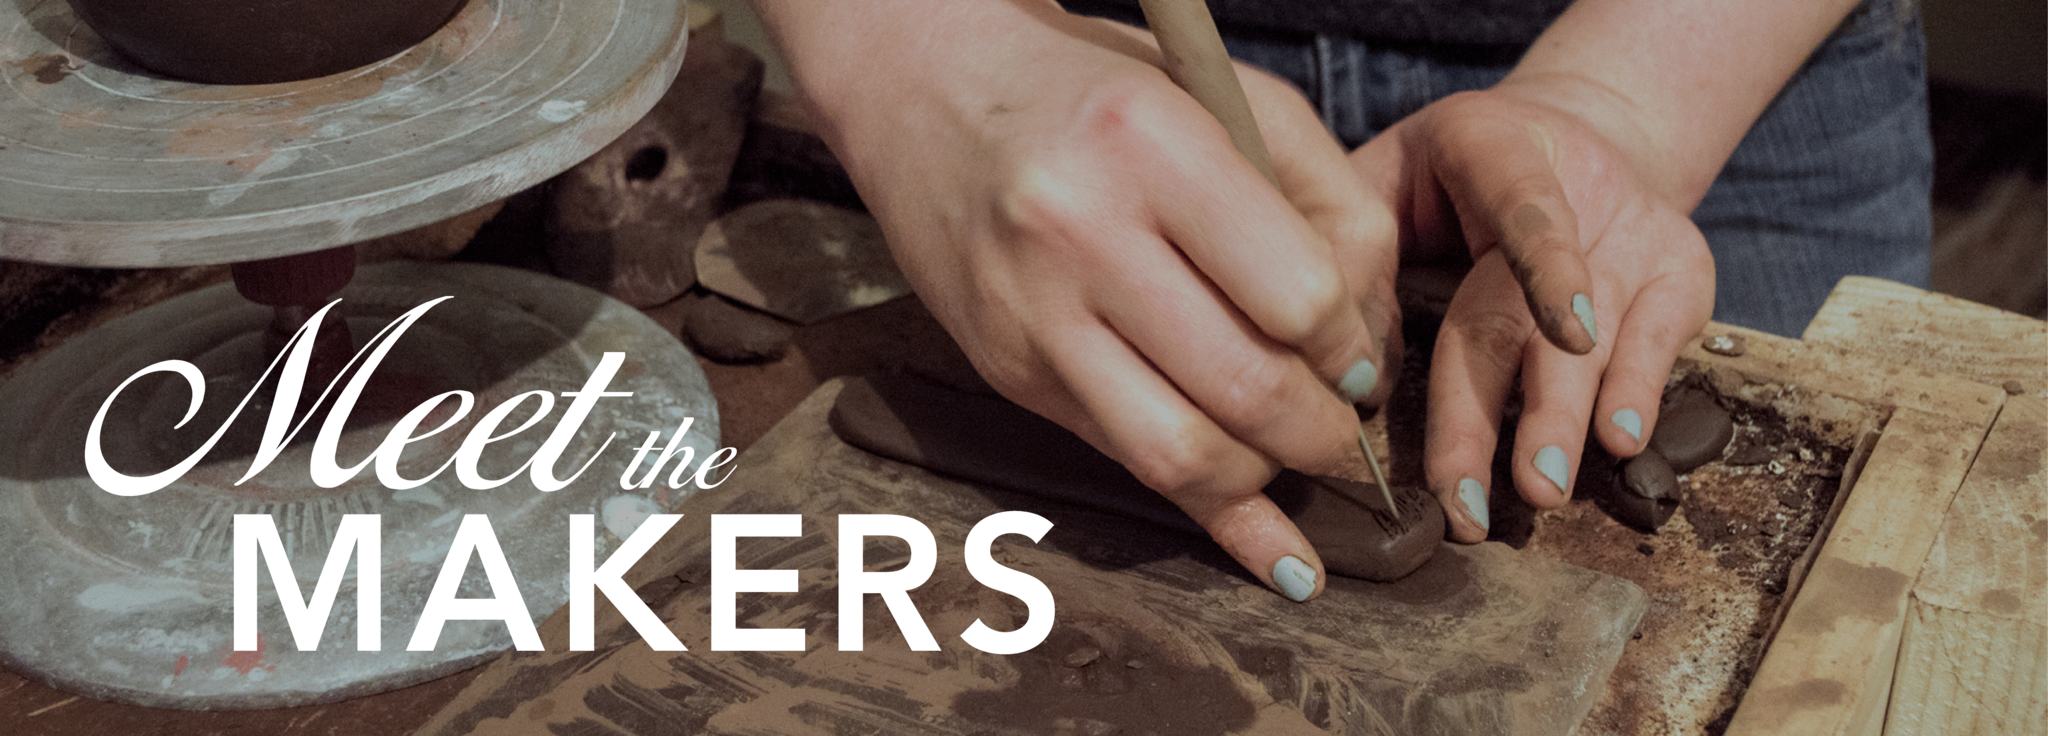 Meet the Makers at Chestnut Studios! Now supporting over 40 different artists from across the country.